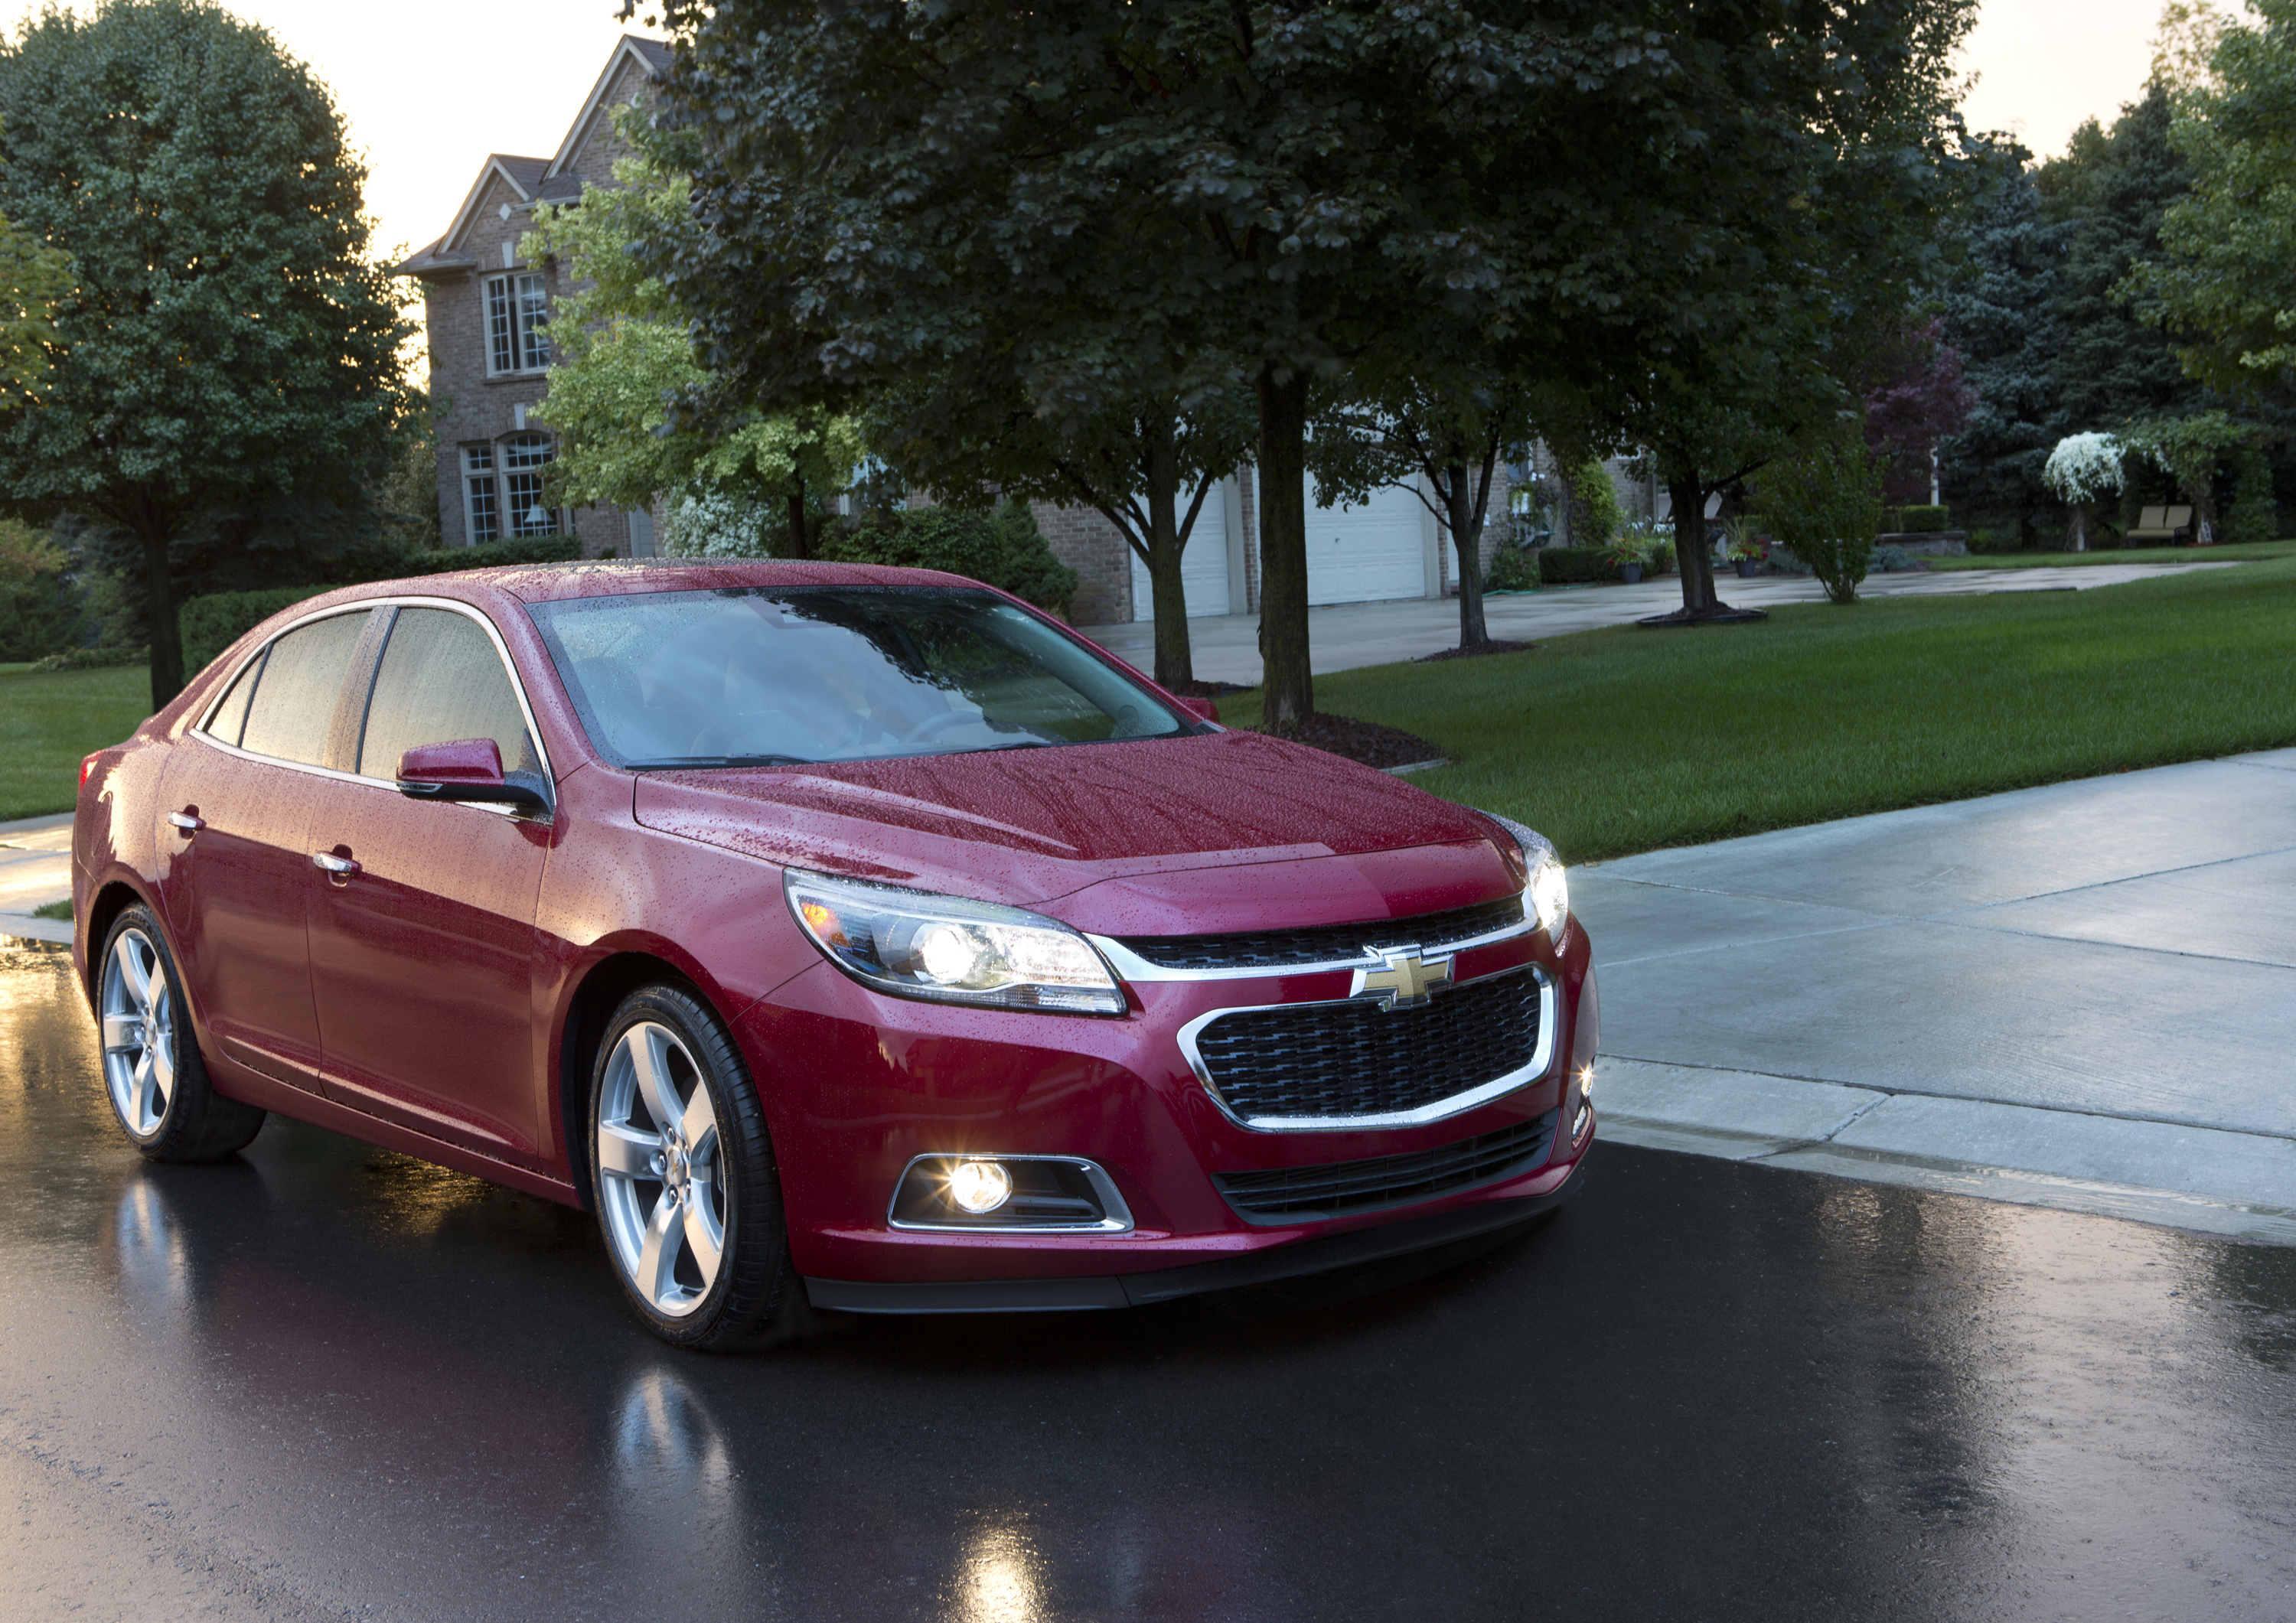 2014 Chevrolet Malibu 010 gm announces five safety recalls  at creativeand.co